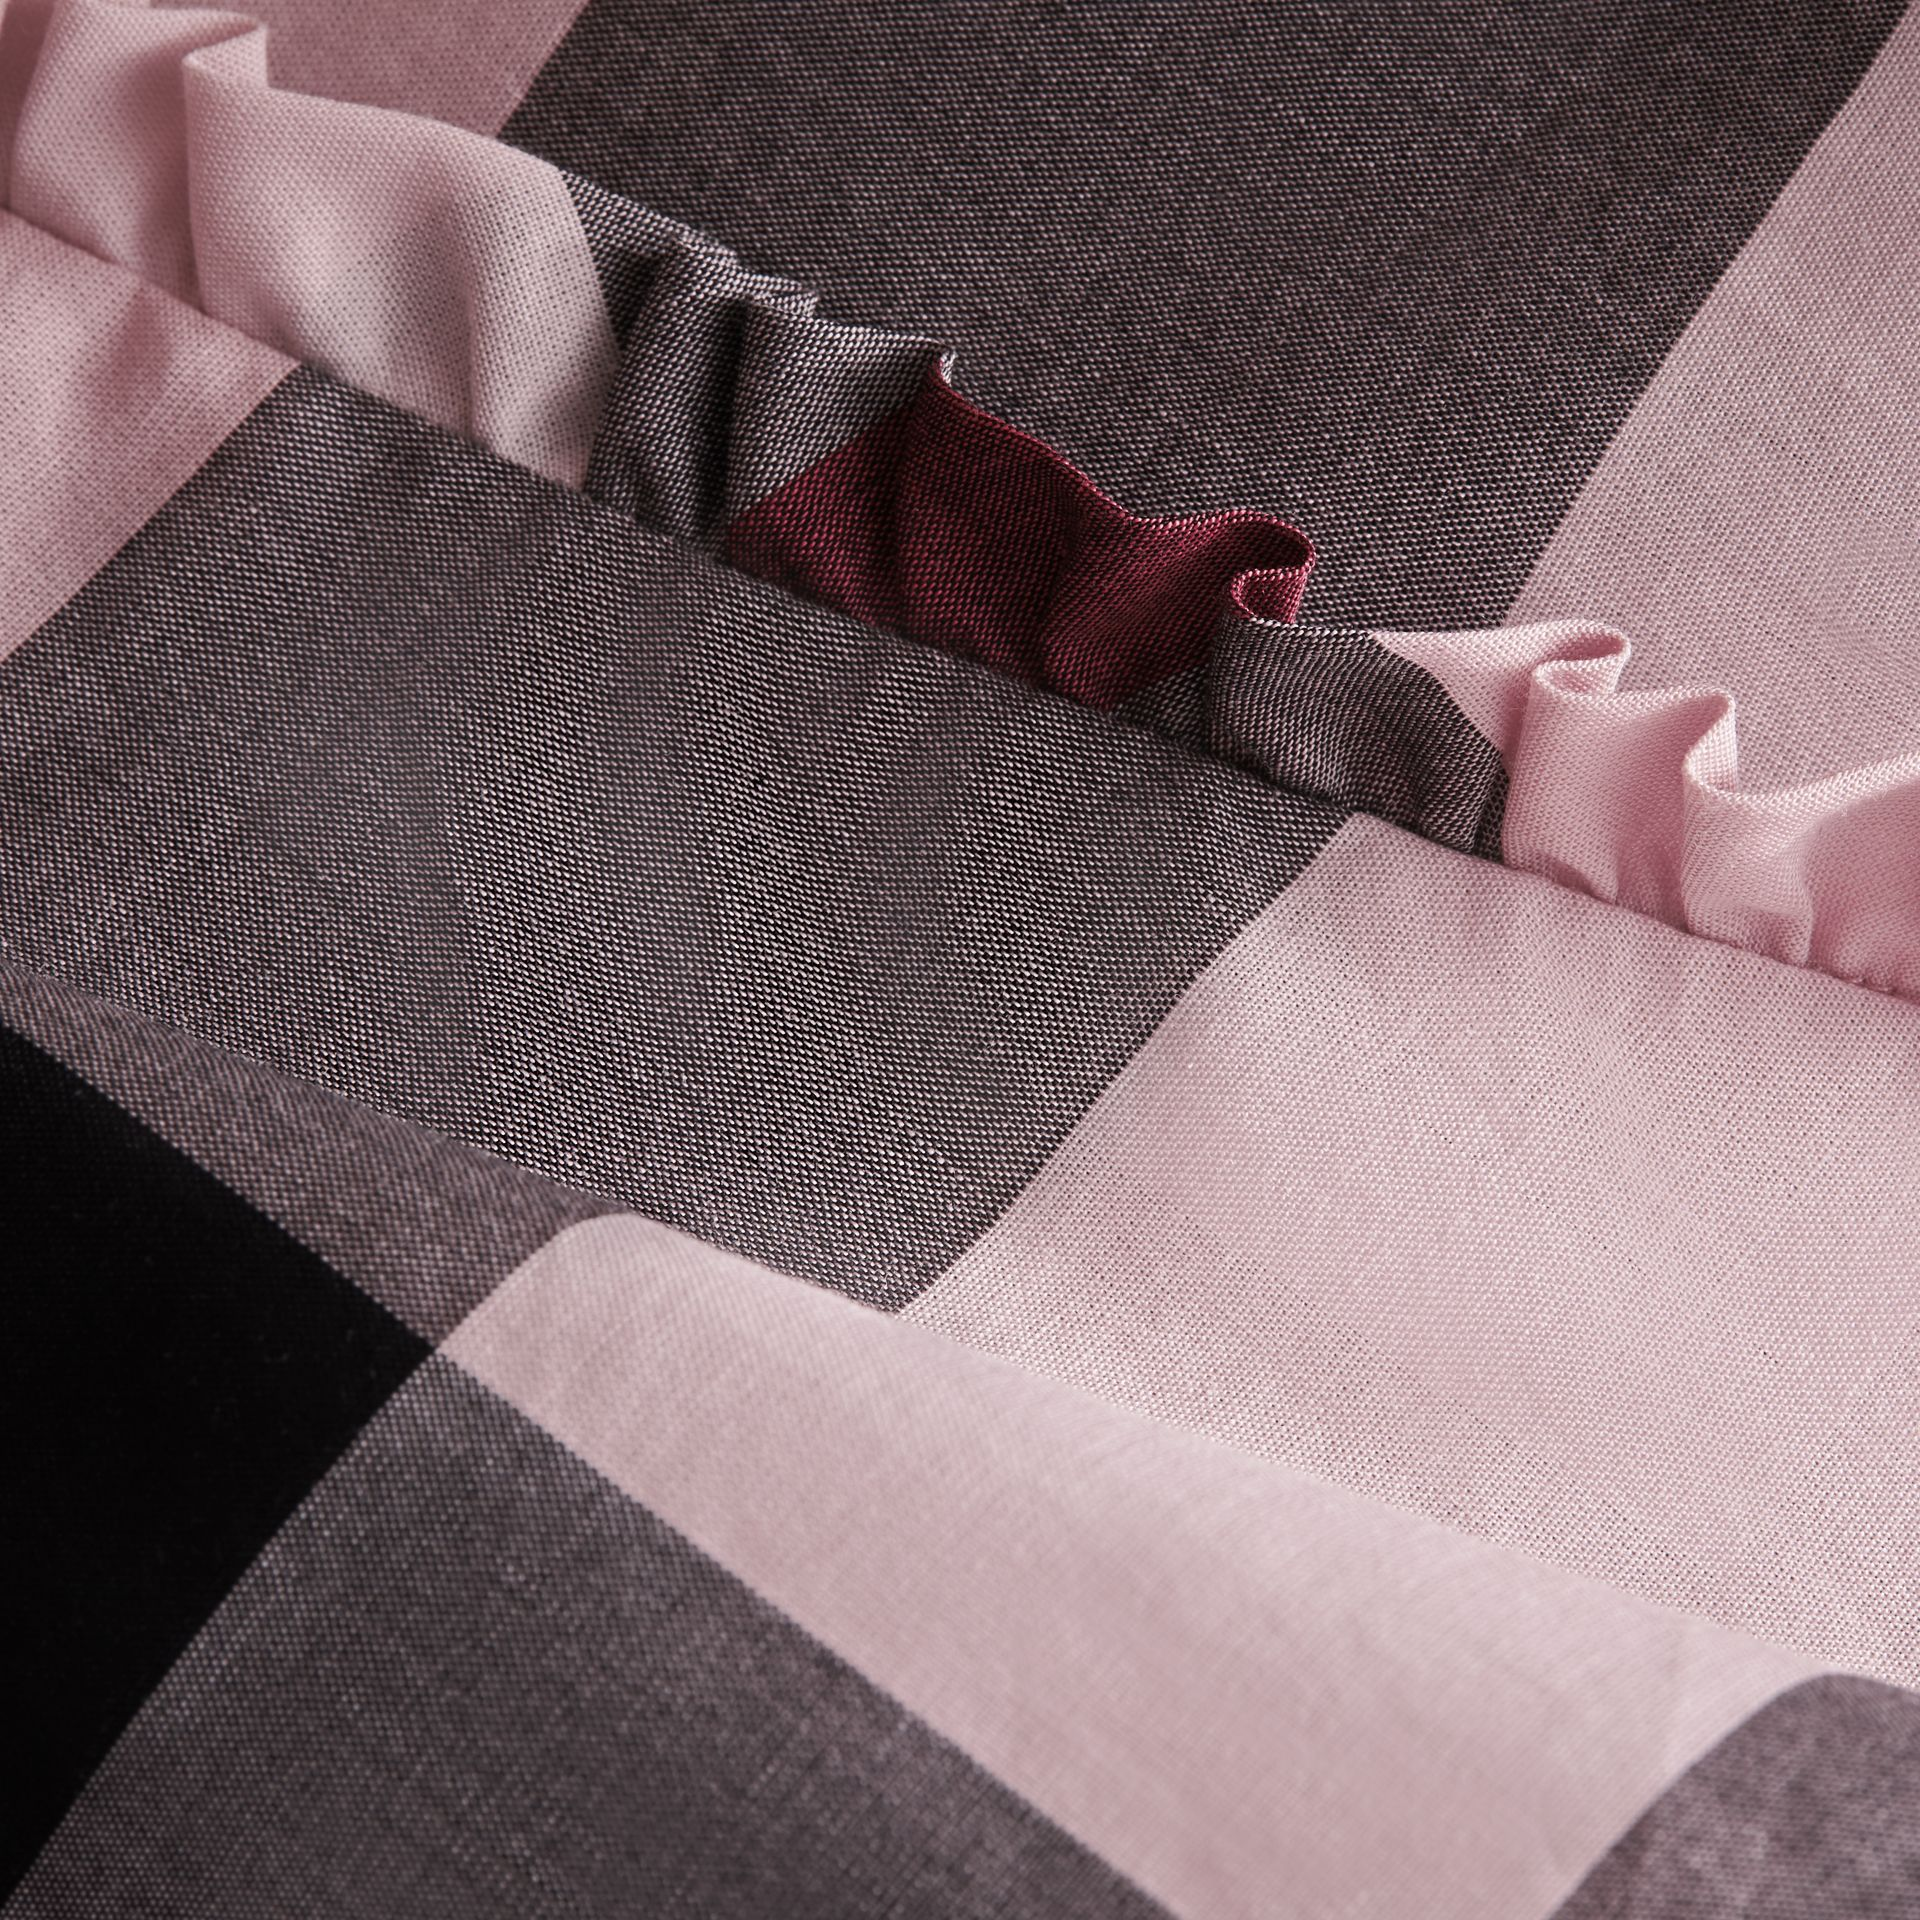 Ruffle Detail Check Cotton Top in Vintage Pink | Burberry United Kingdom - gallery image 1